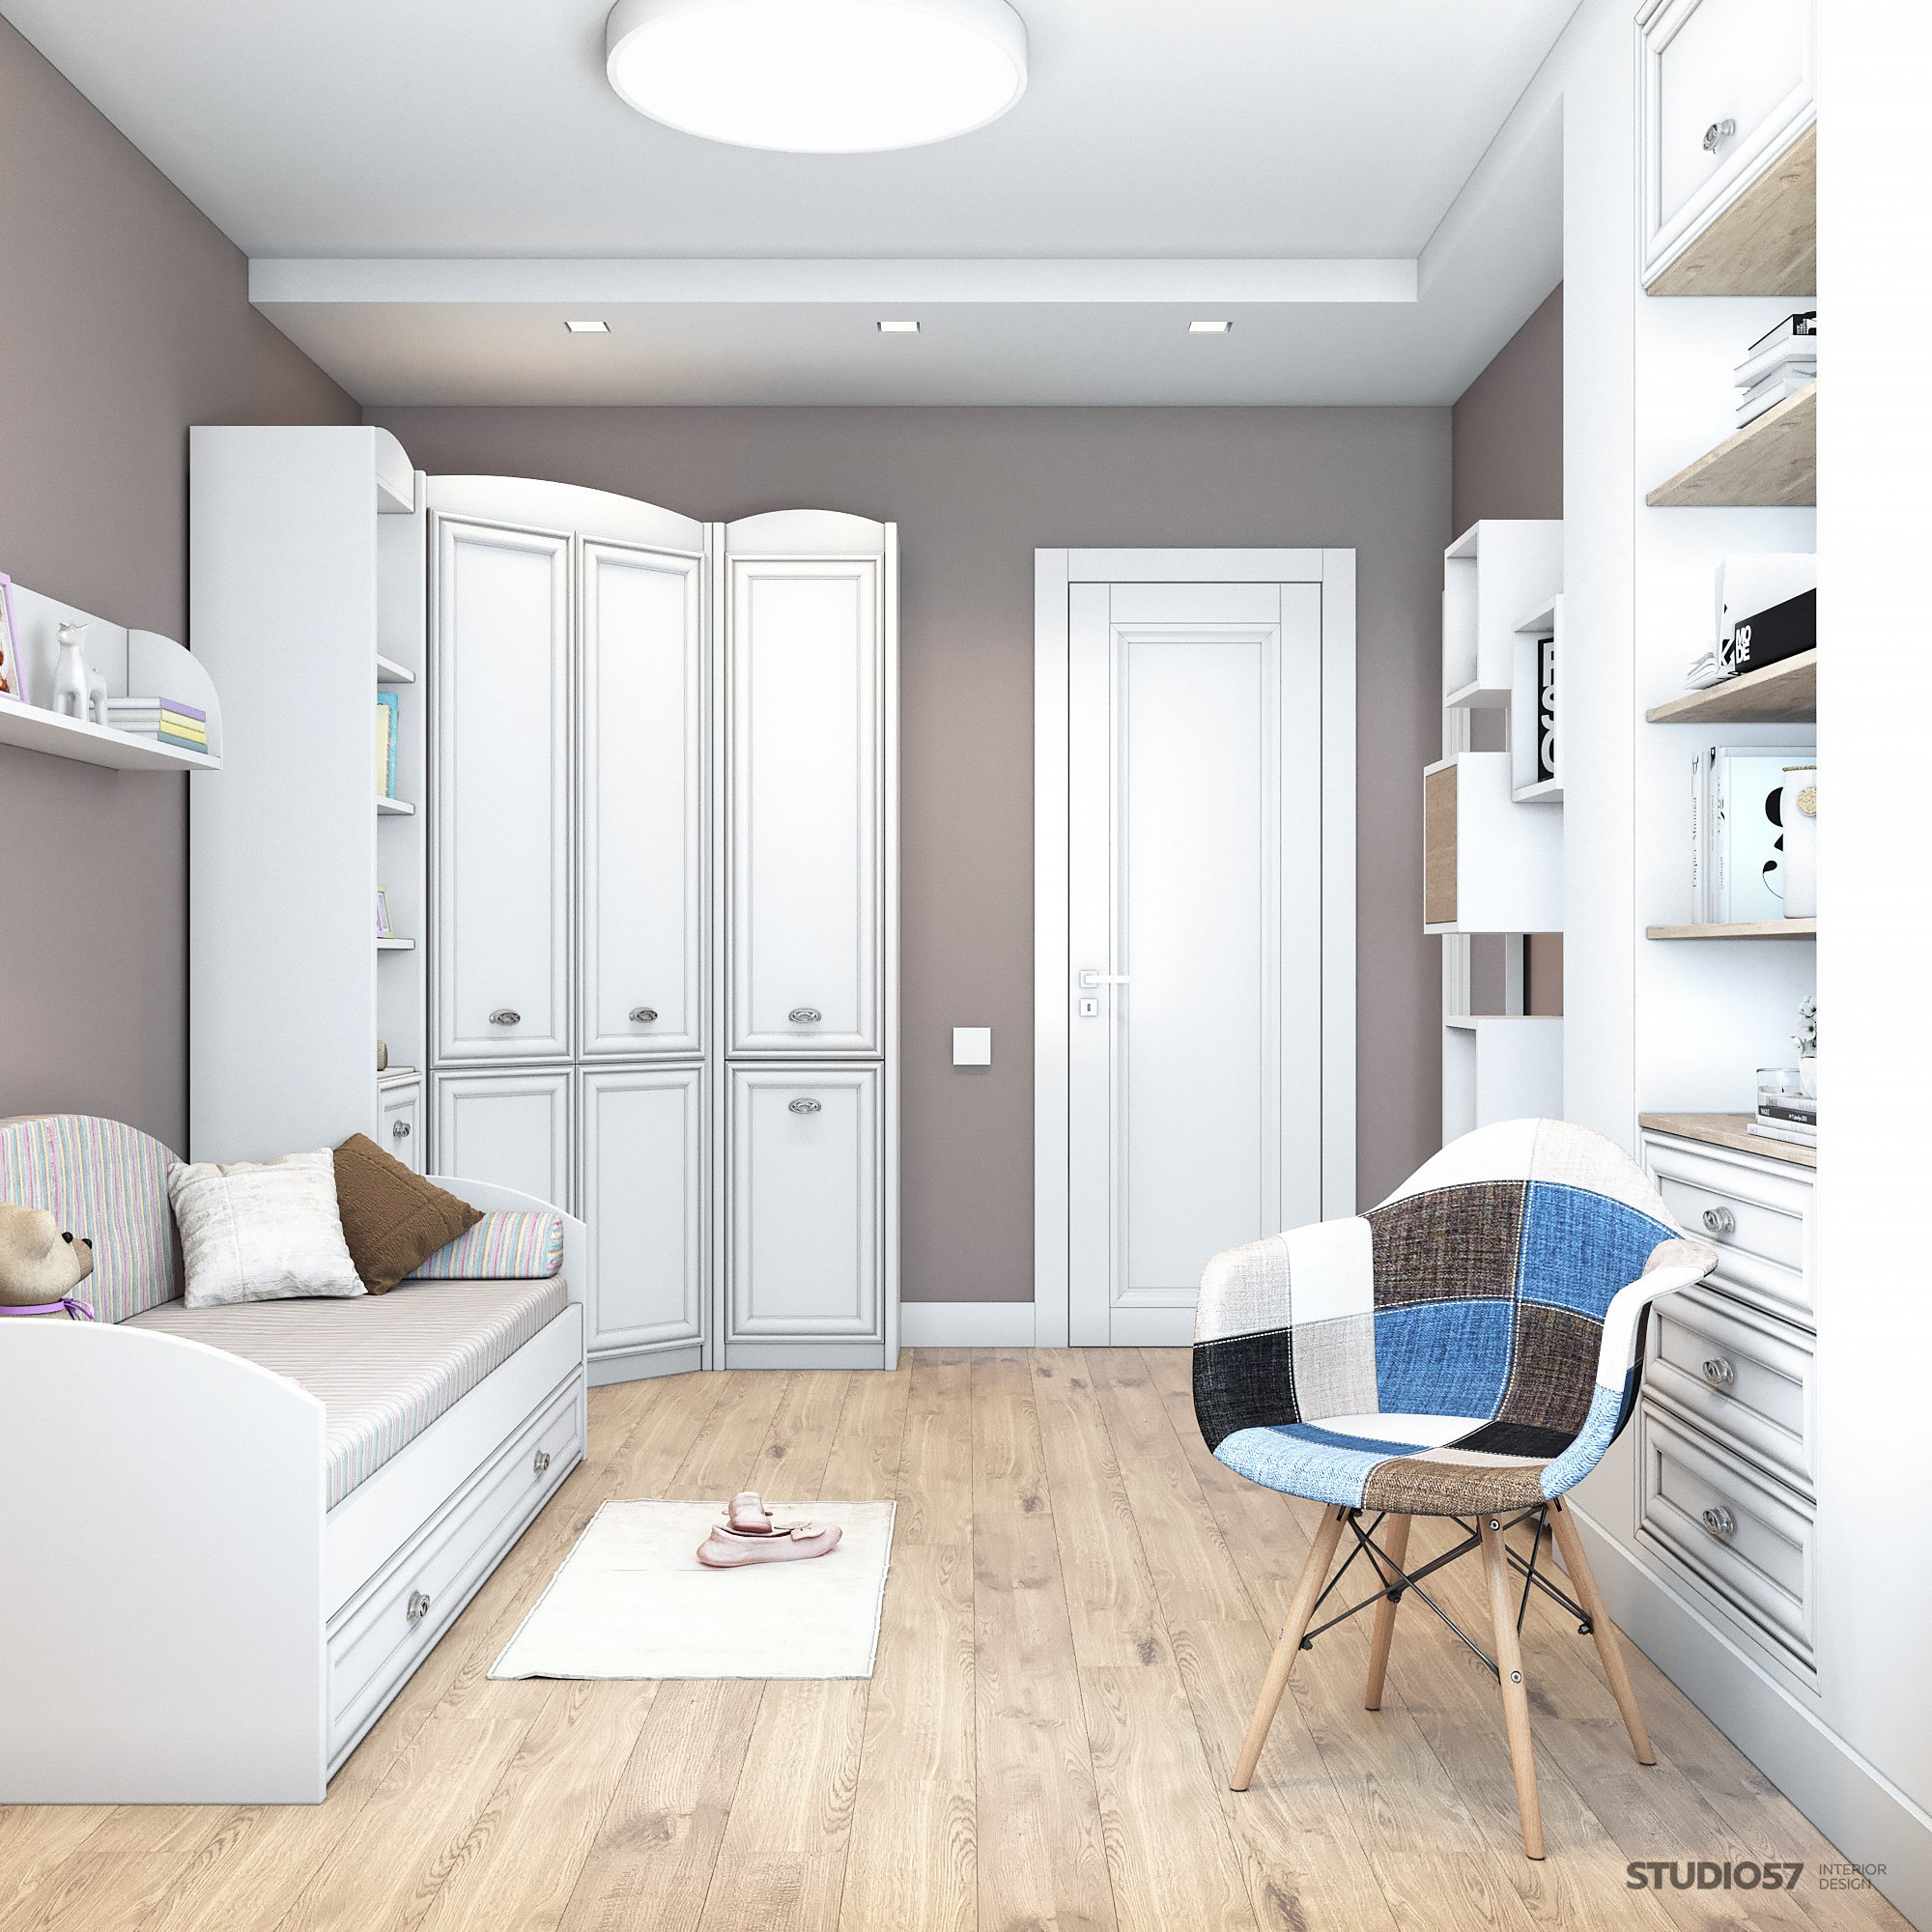 Furniture for the nursery in a modern style photo